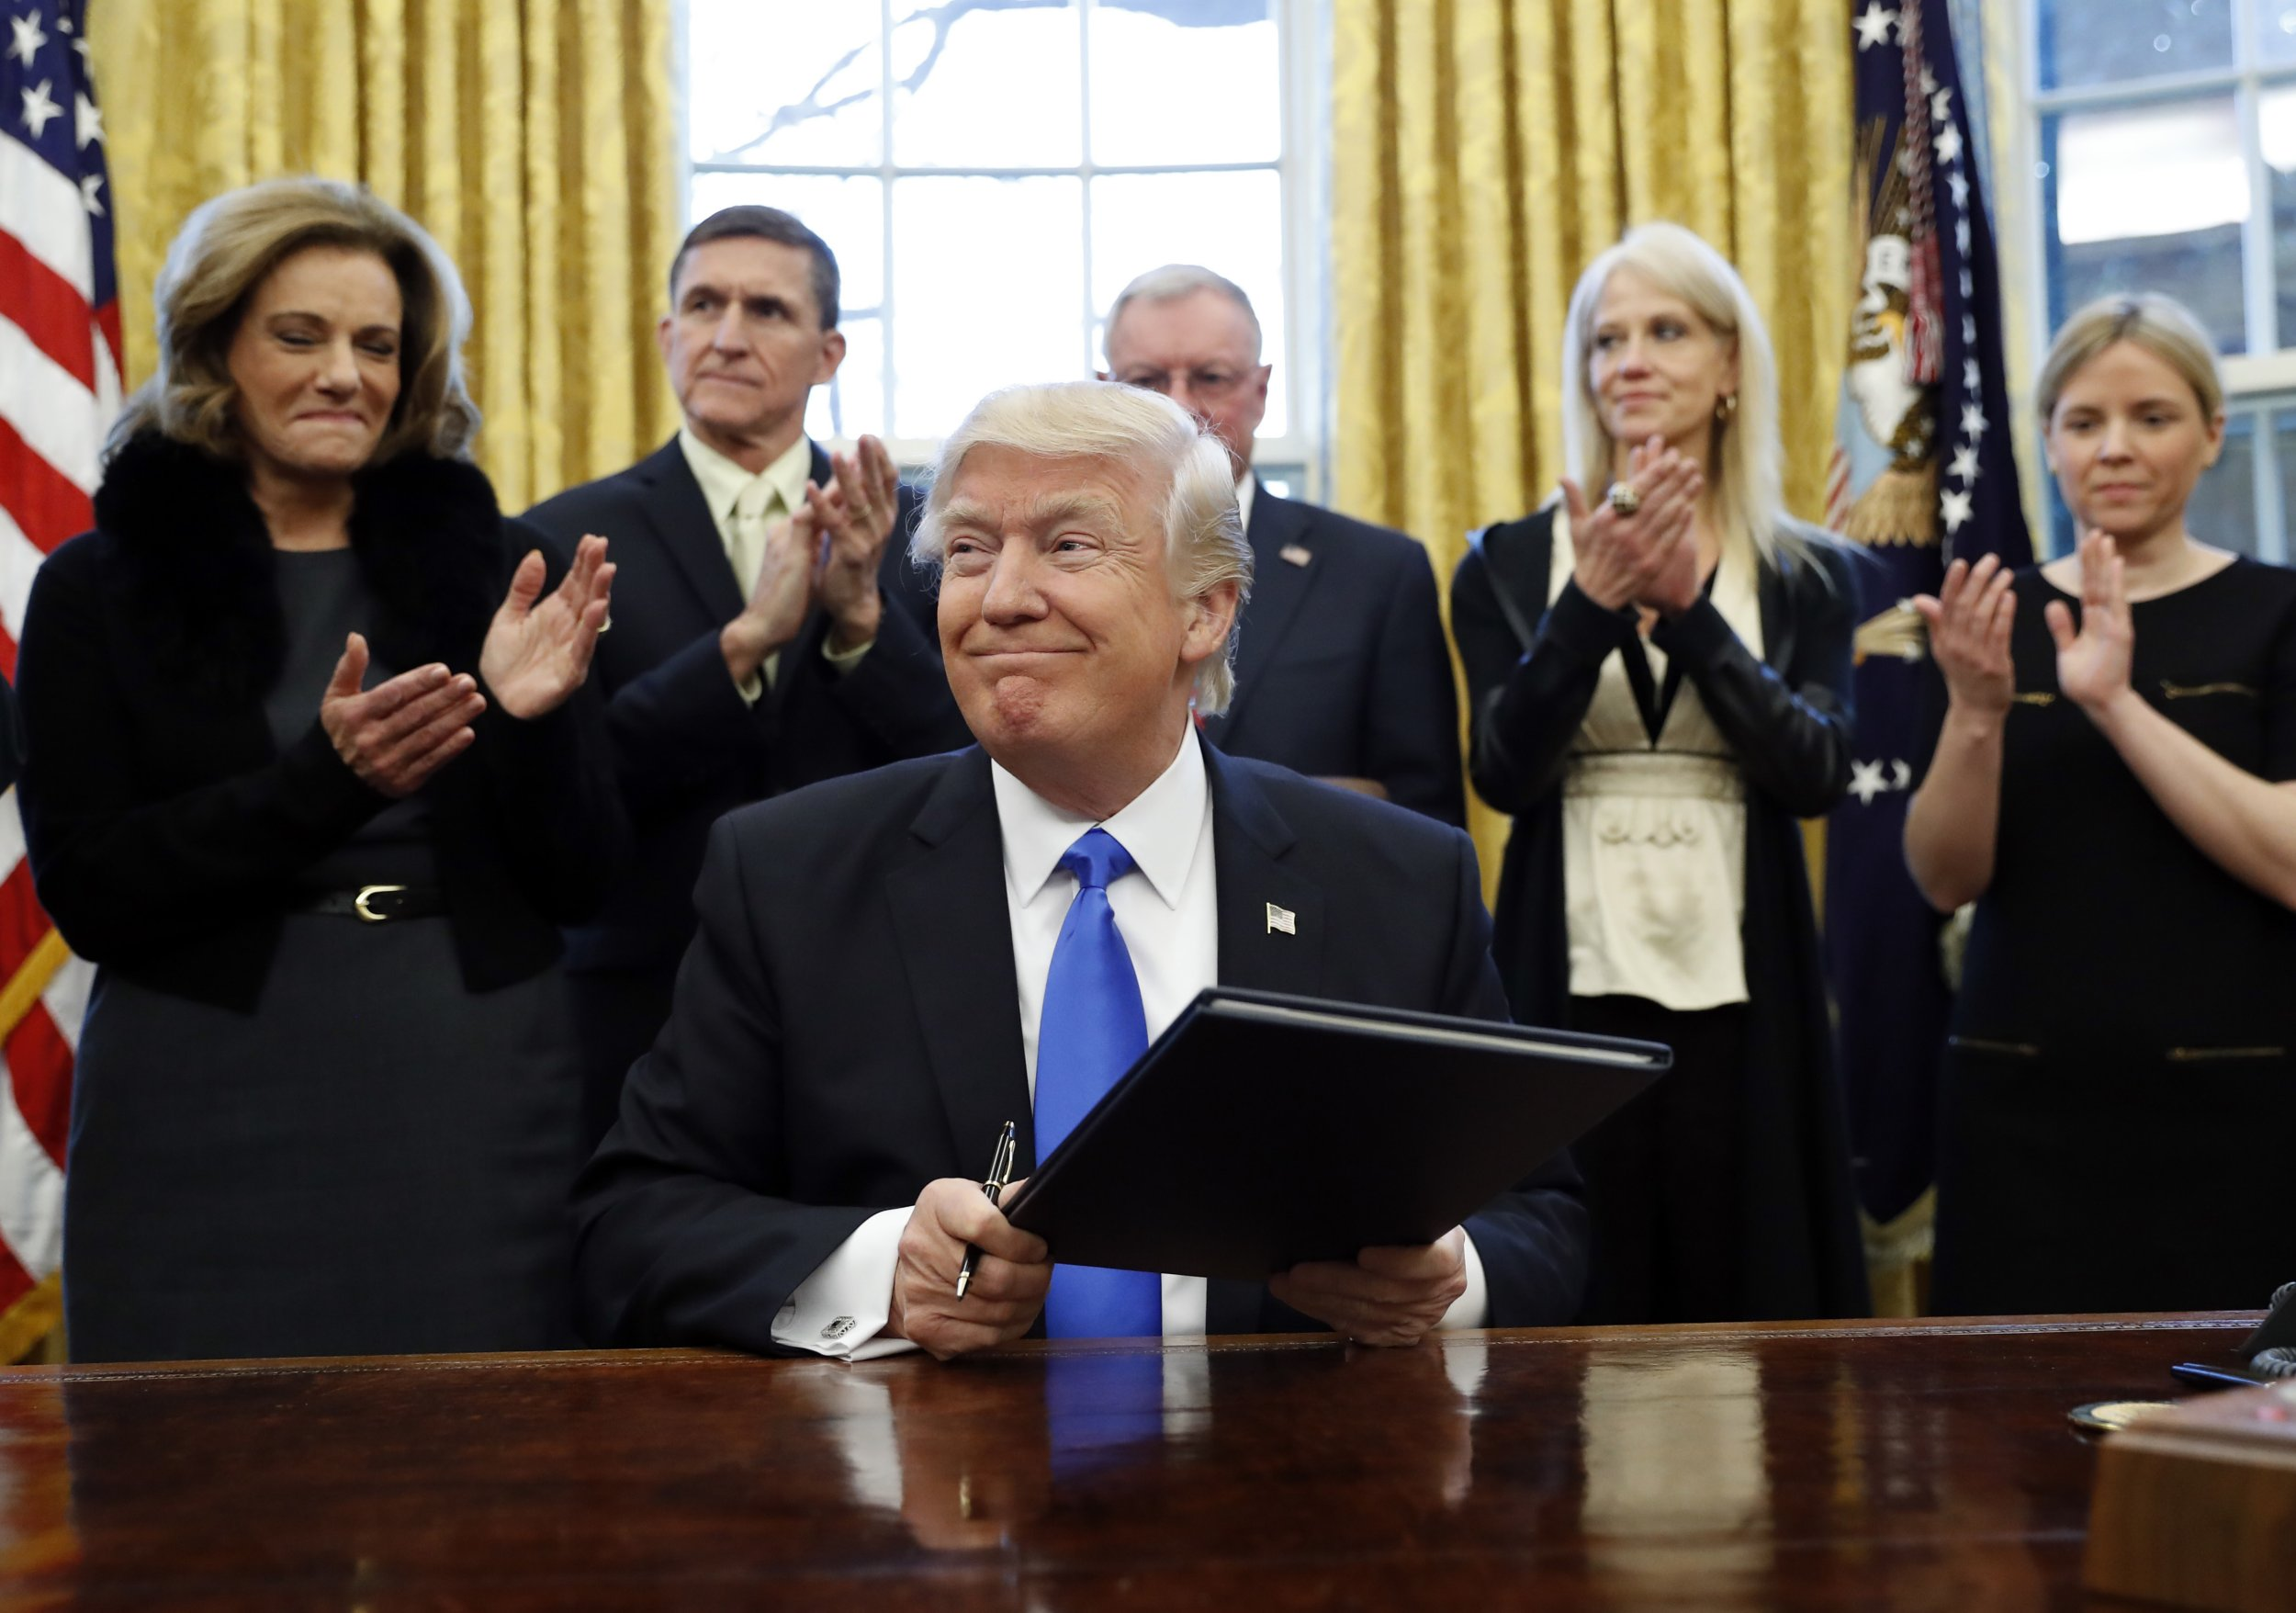 President Donald Trump smiles after signing an executive action in the Oval Office, Saturday, Jan. 28, 2017 in Washington. (AP Photo/Alex Brandon)